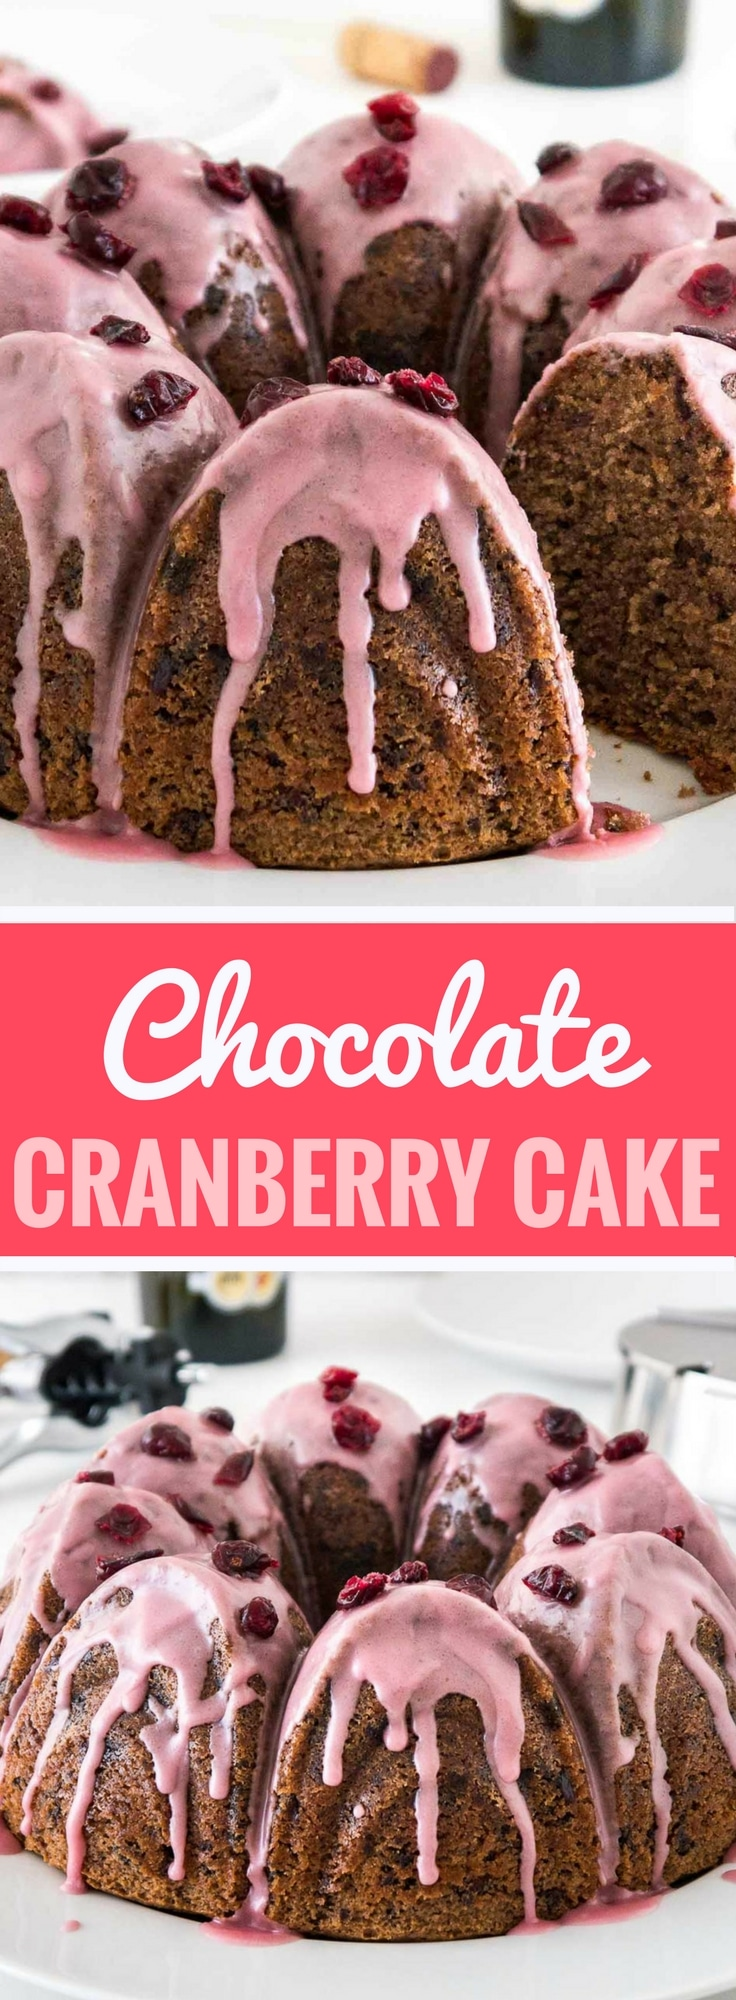 Chocolate Cranberry Cake is so moist, tender, and studded with chocolate and cranberries! A perfect cake for the holiday season that is super flavorful because of a secret ingredient. You have to give it a try!